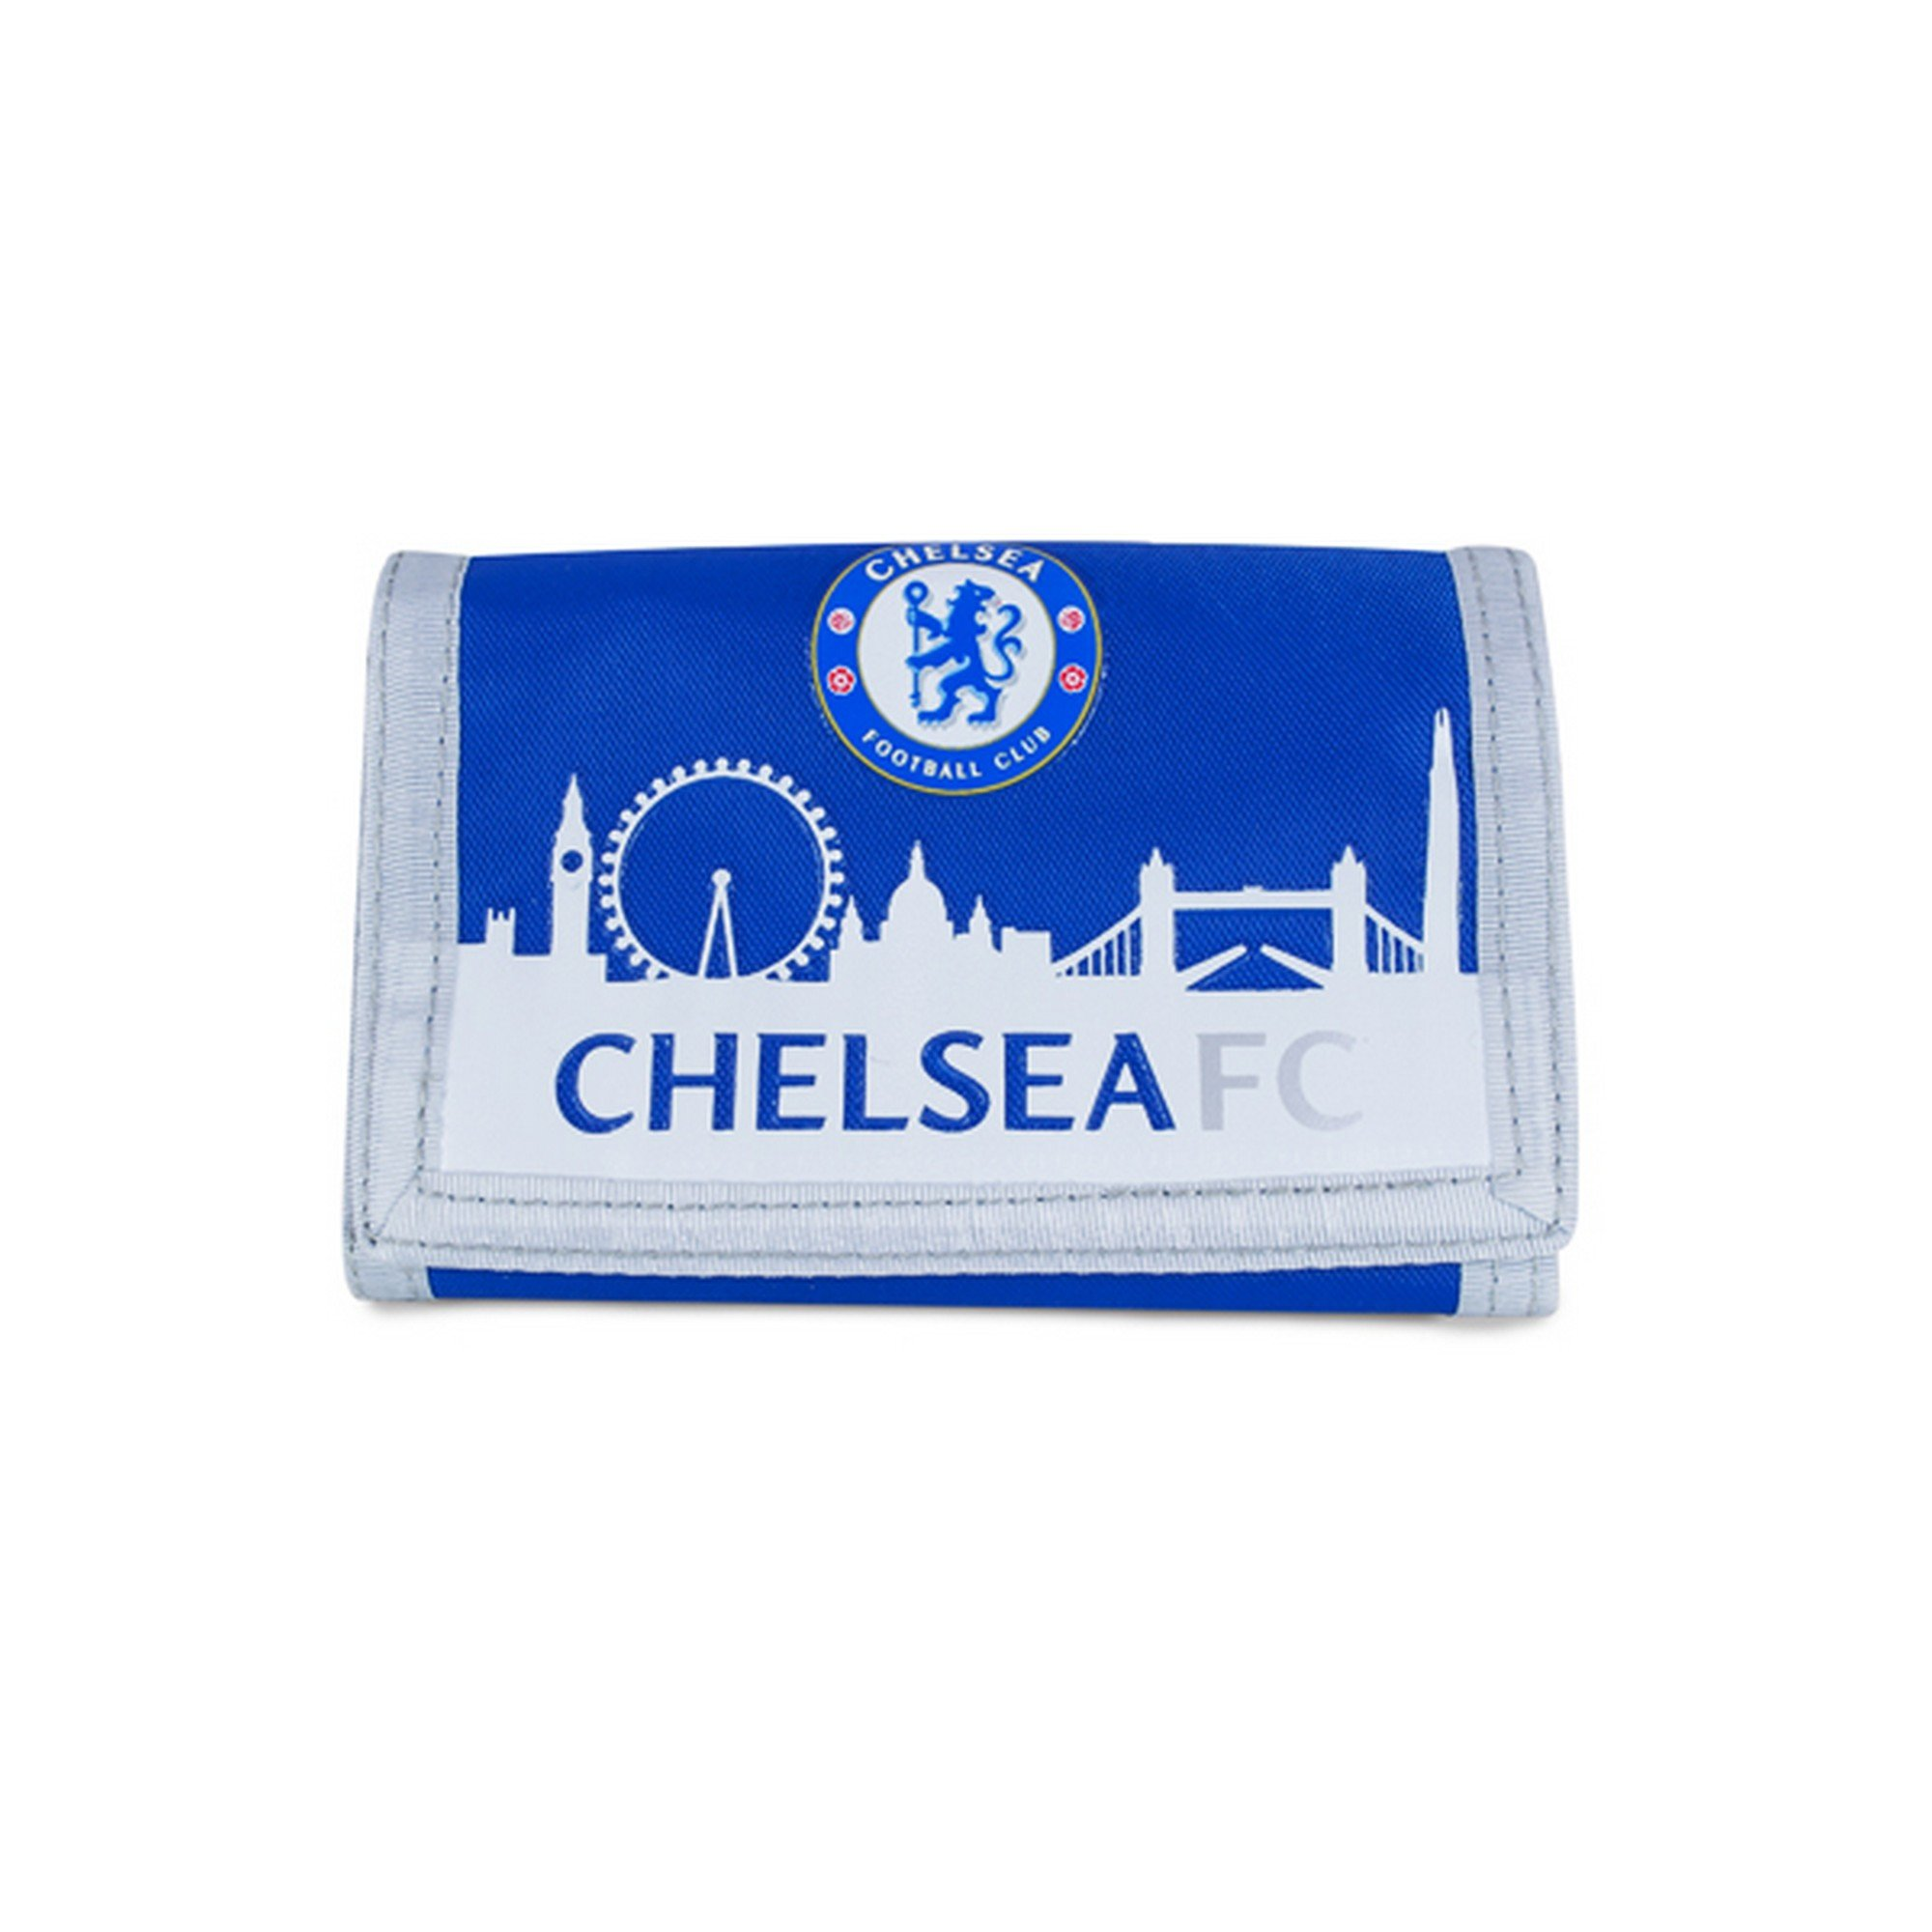 6e1ae1e51 Get Quotations · Chelsea FC Official London Skyline Football Crest Wallet